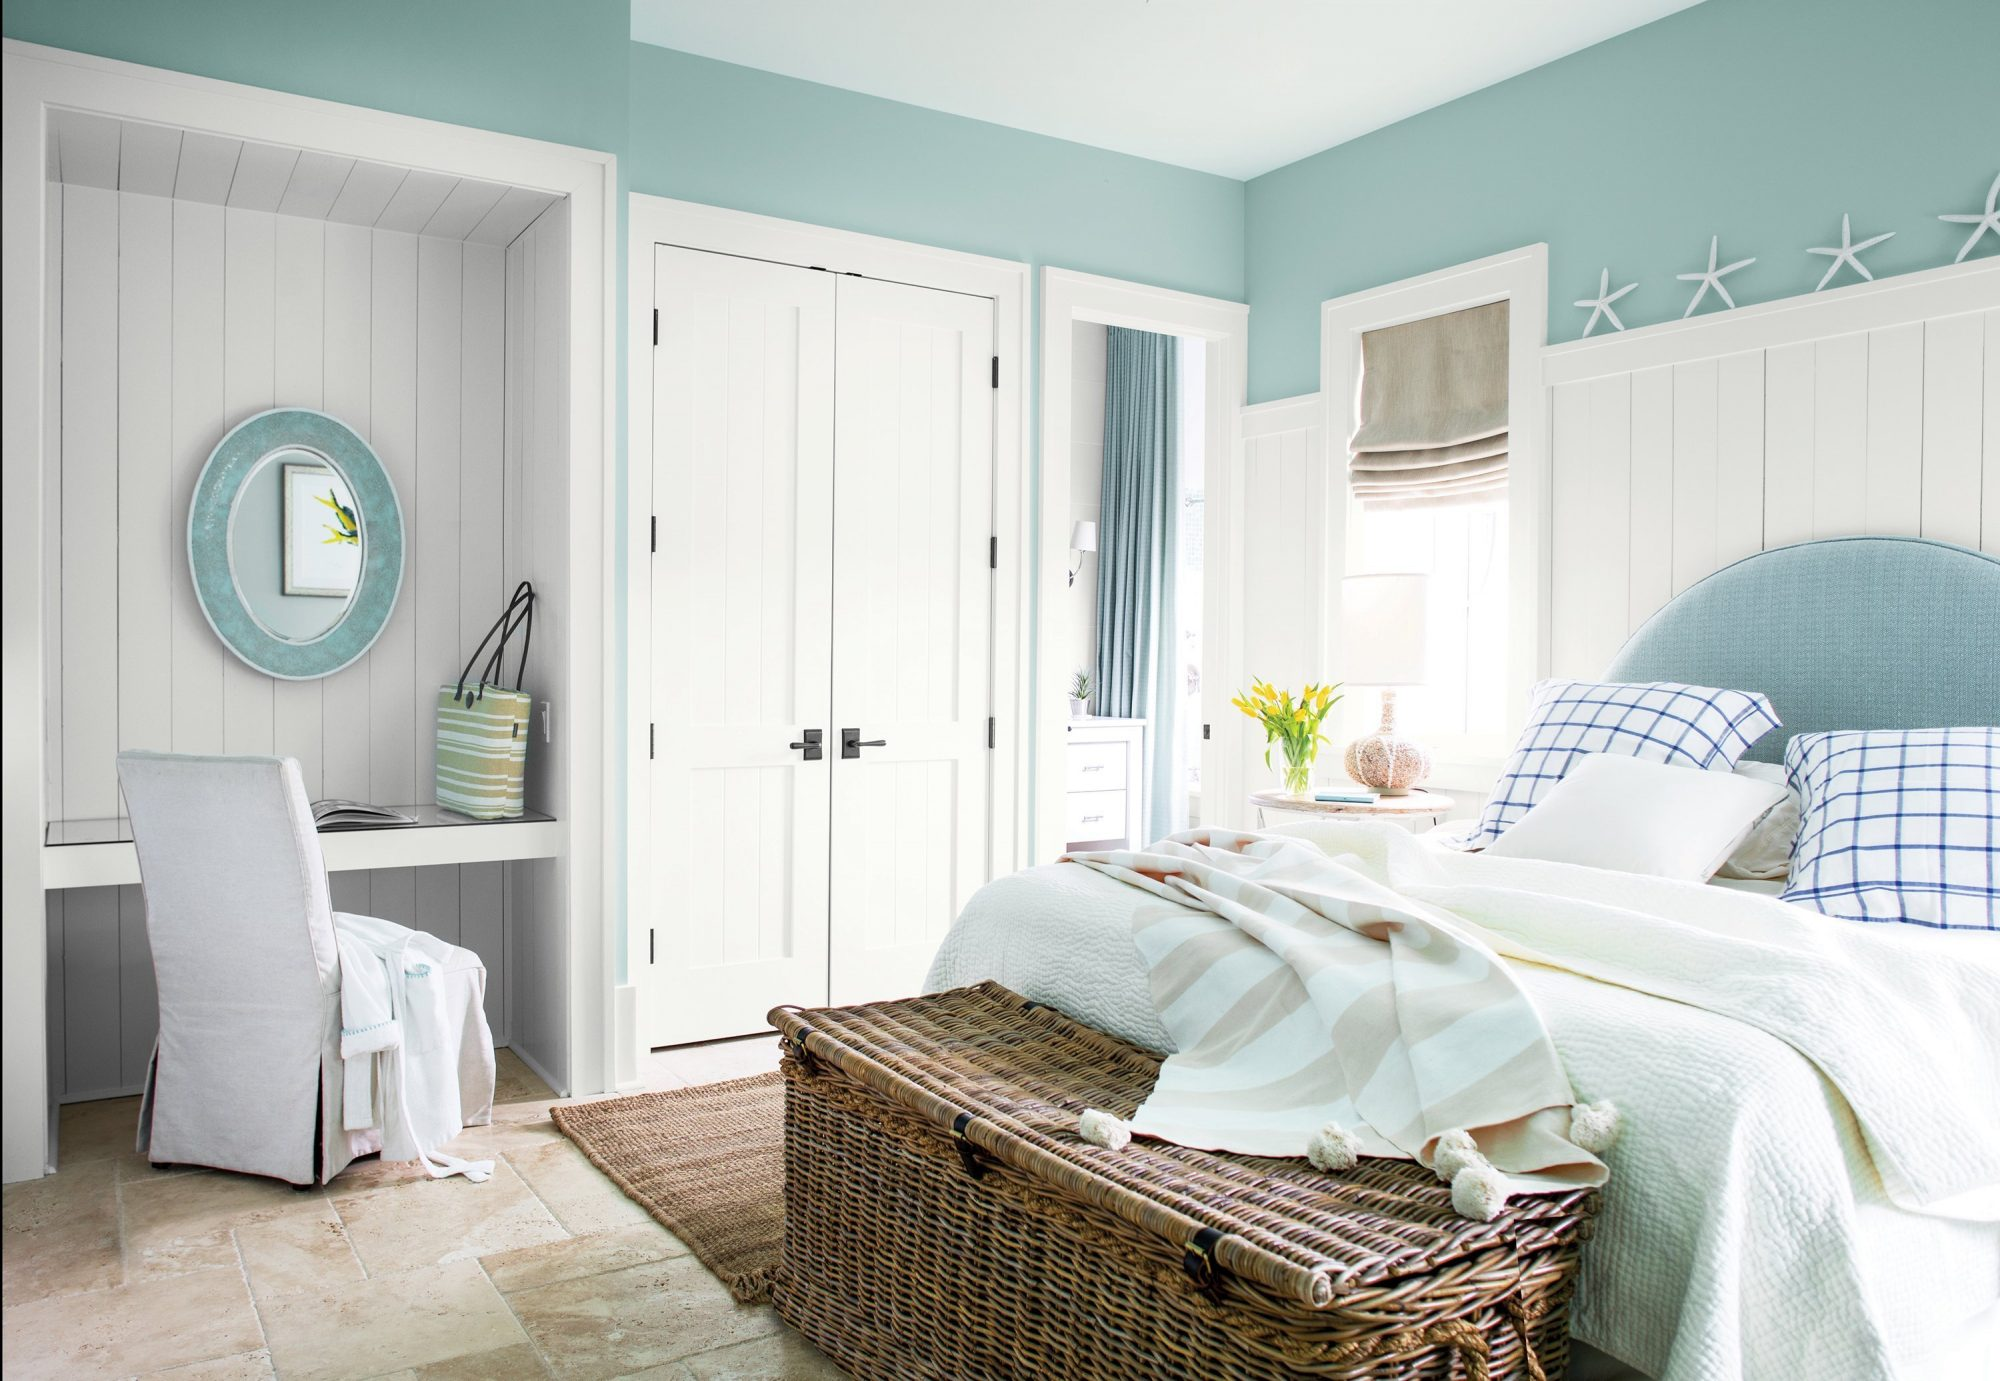 Light_Blue_Bedroom_with_Wicker_Basket